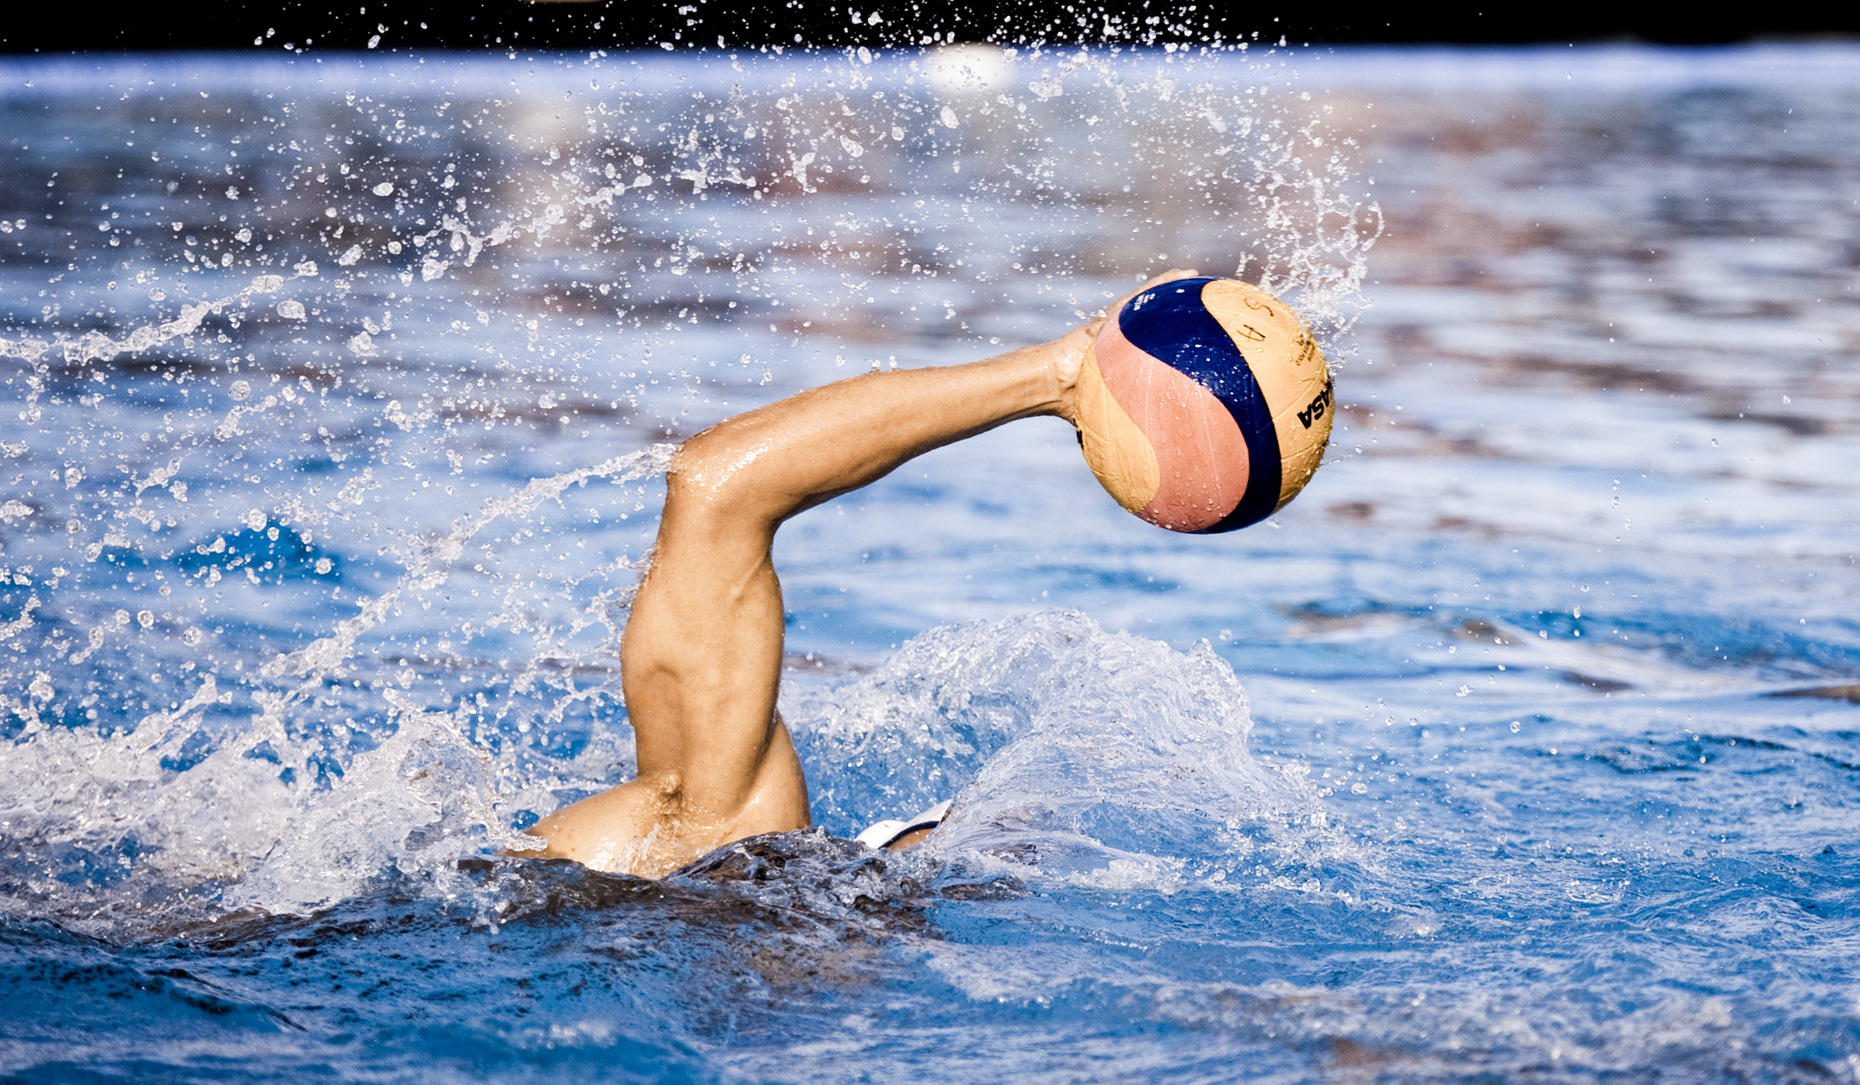 Los Angeles Sports Photography, Michael Brian, athlete, USA Water Polo. US Olympic Water Polo